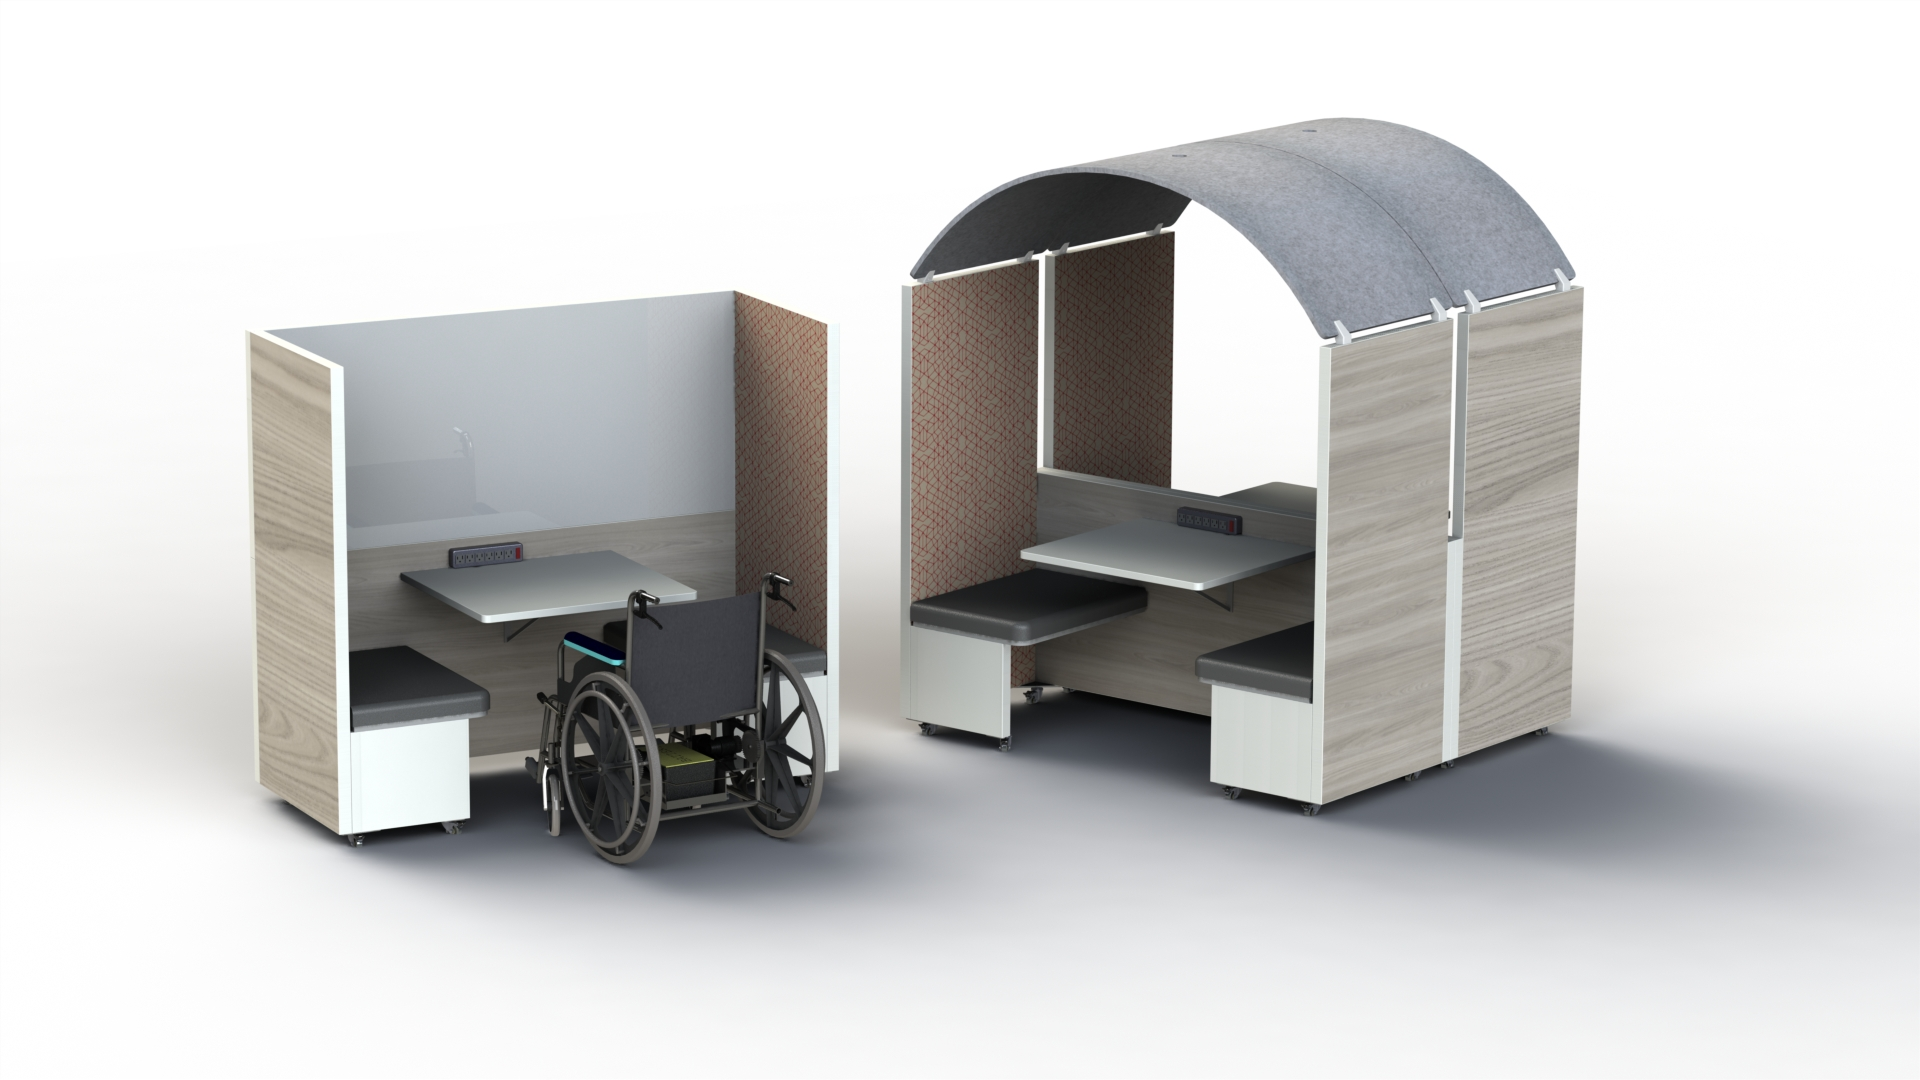 Swiftspace Dos Family-Mobile Meeting Room